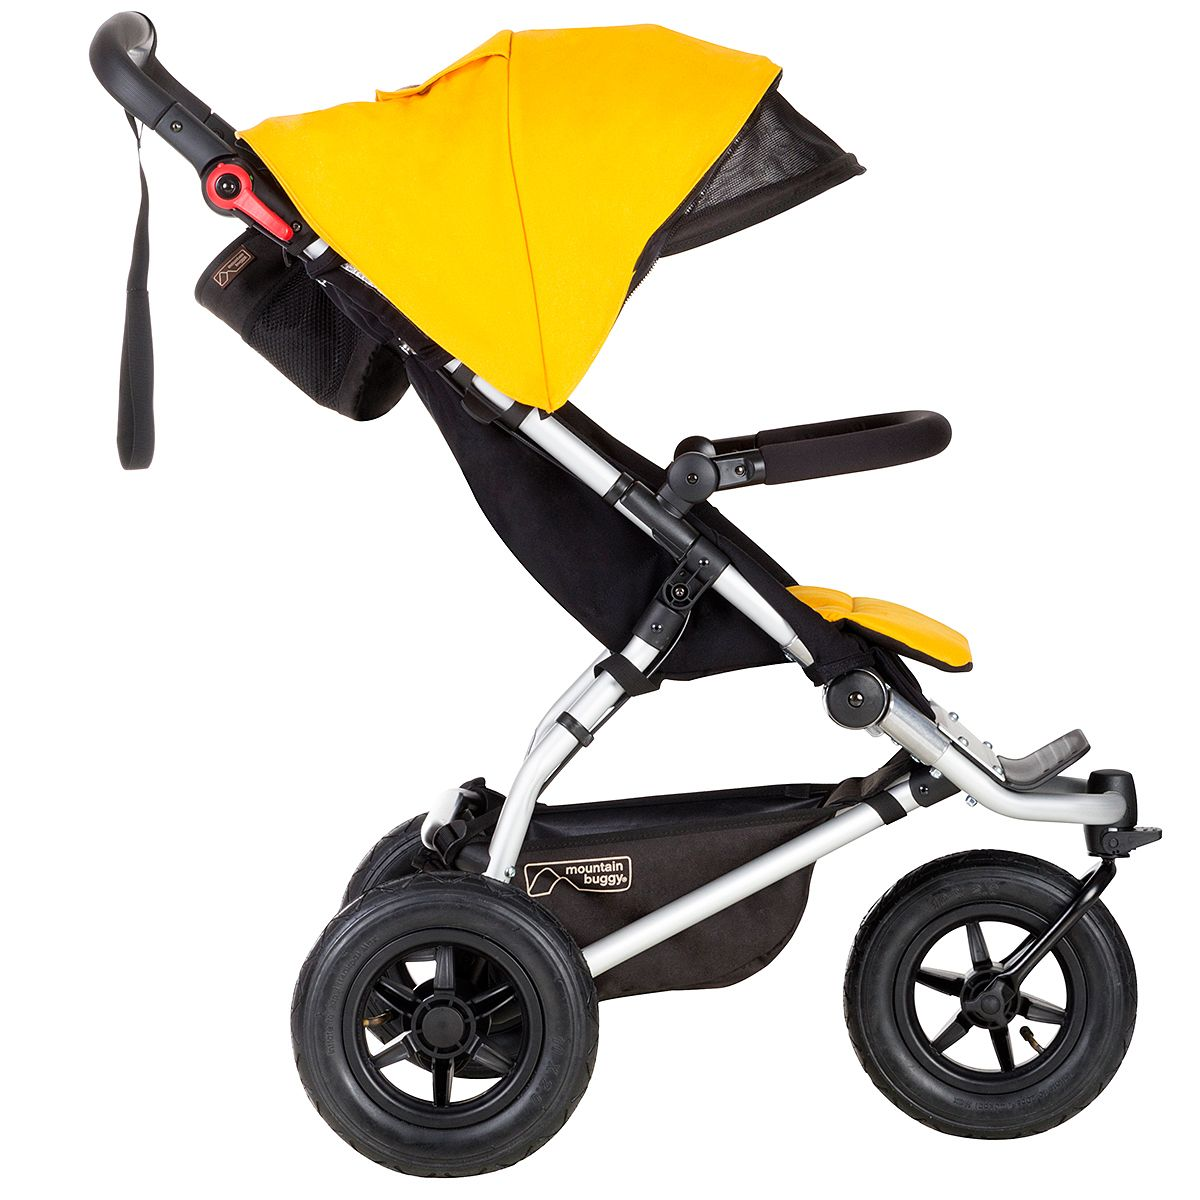 Mountain Buggy Zum Joggen Ariel Or This One Mountain Buggy Swift Littles